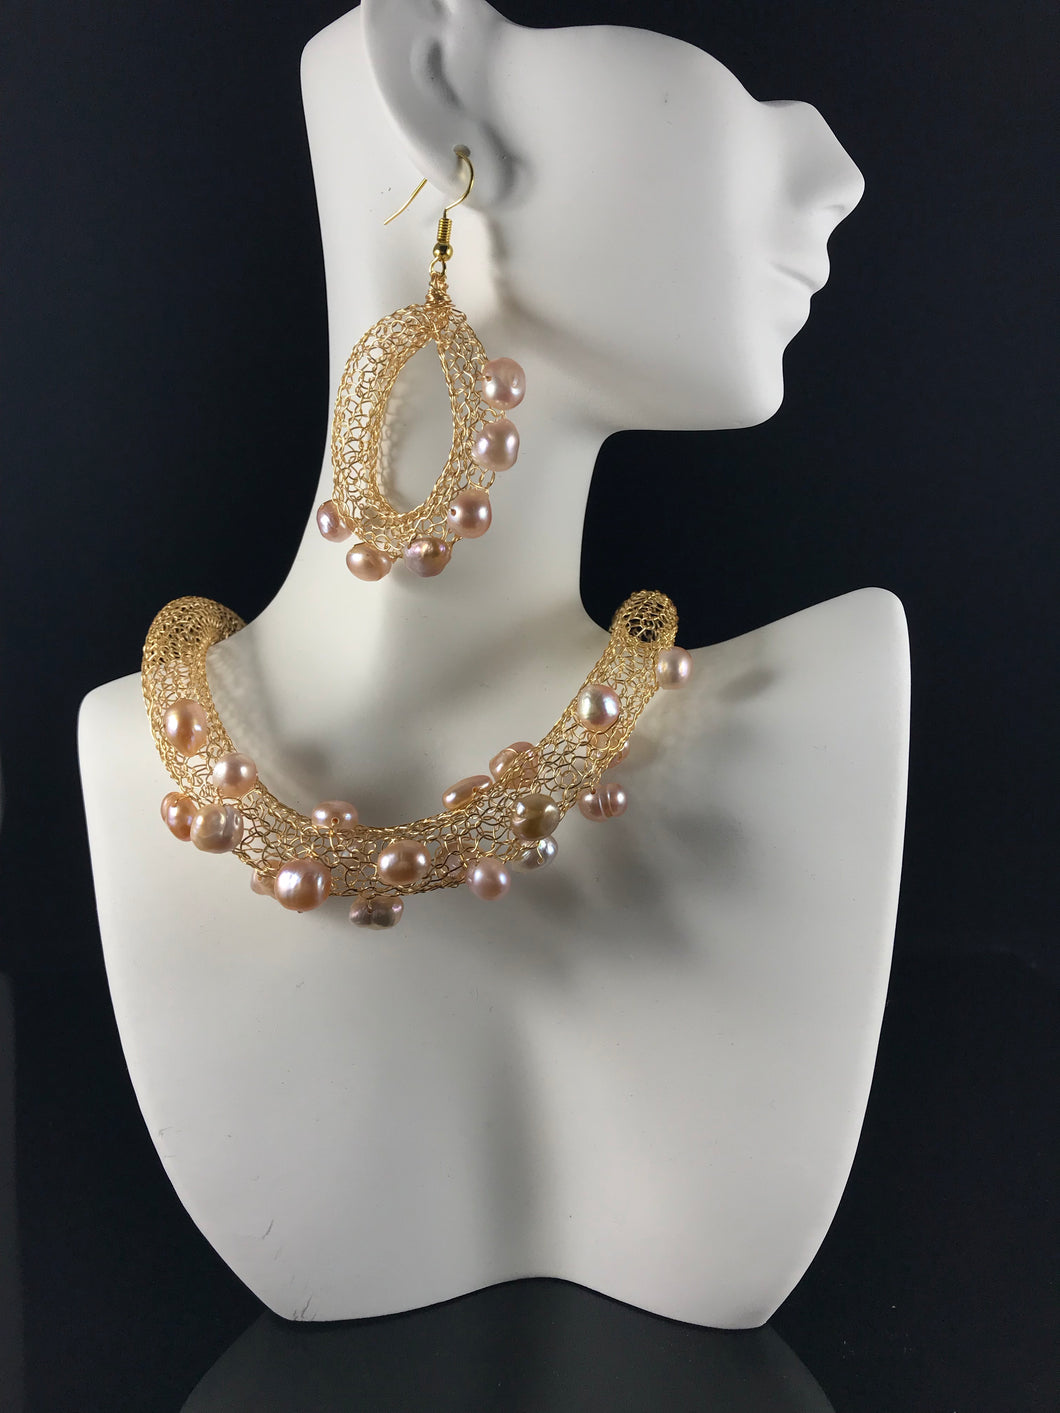 Necklace with matching earrings gold colored wire with cultured blush potato pearls